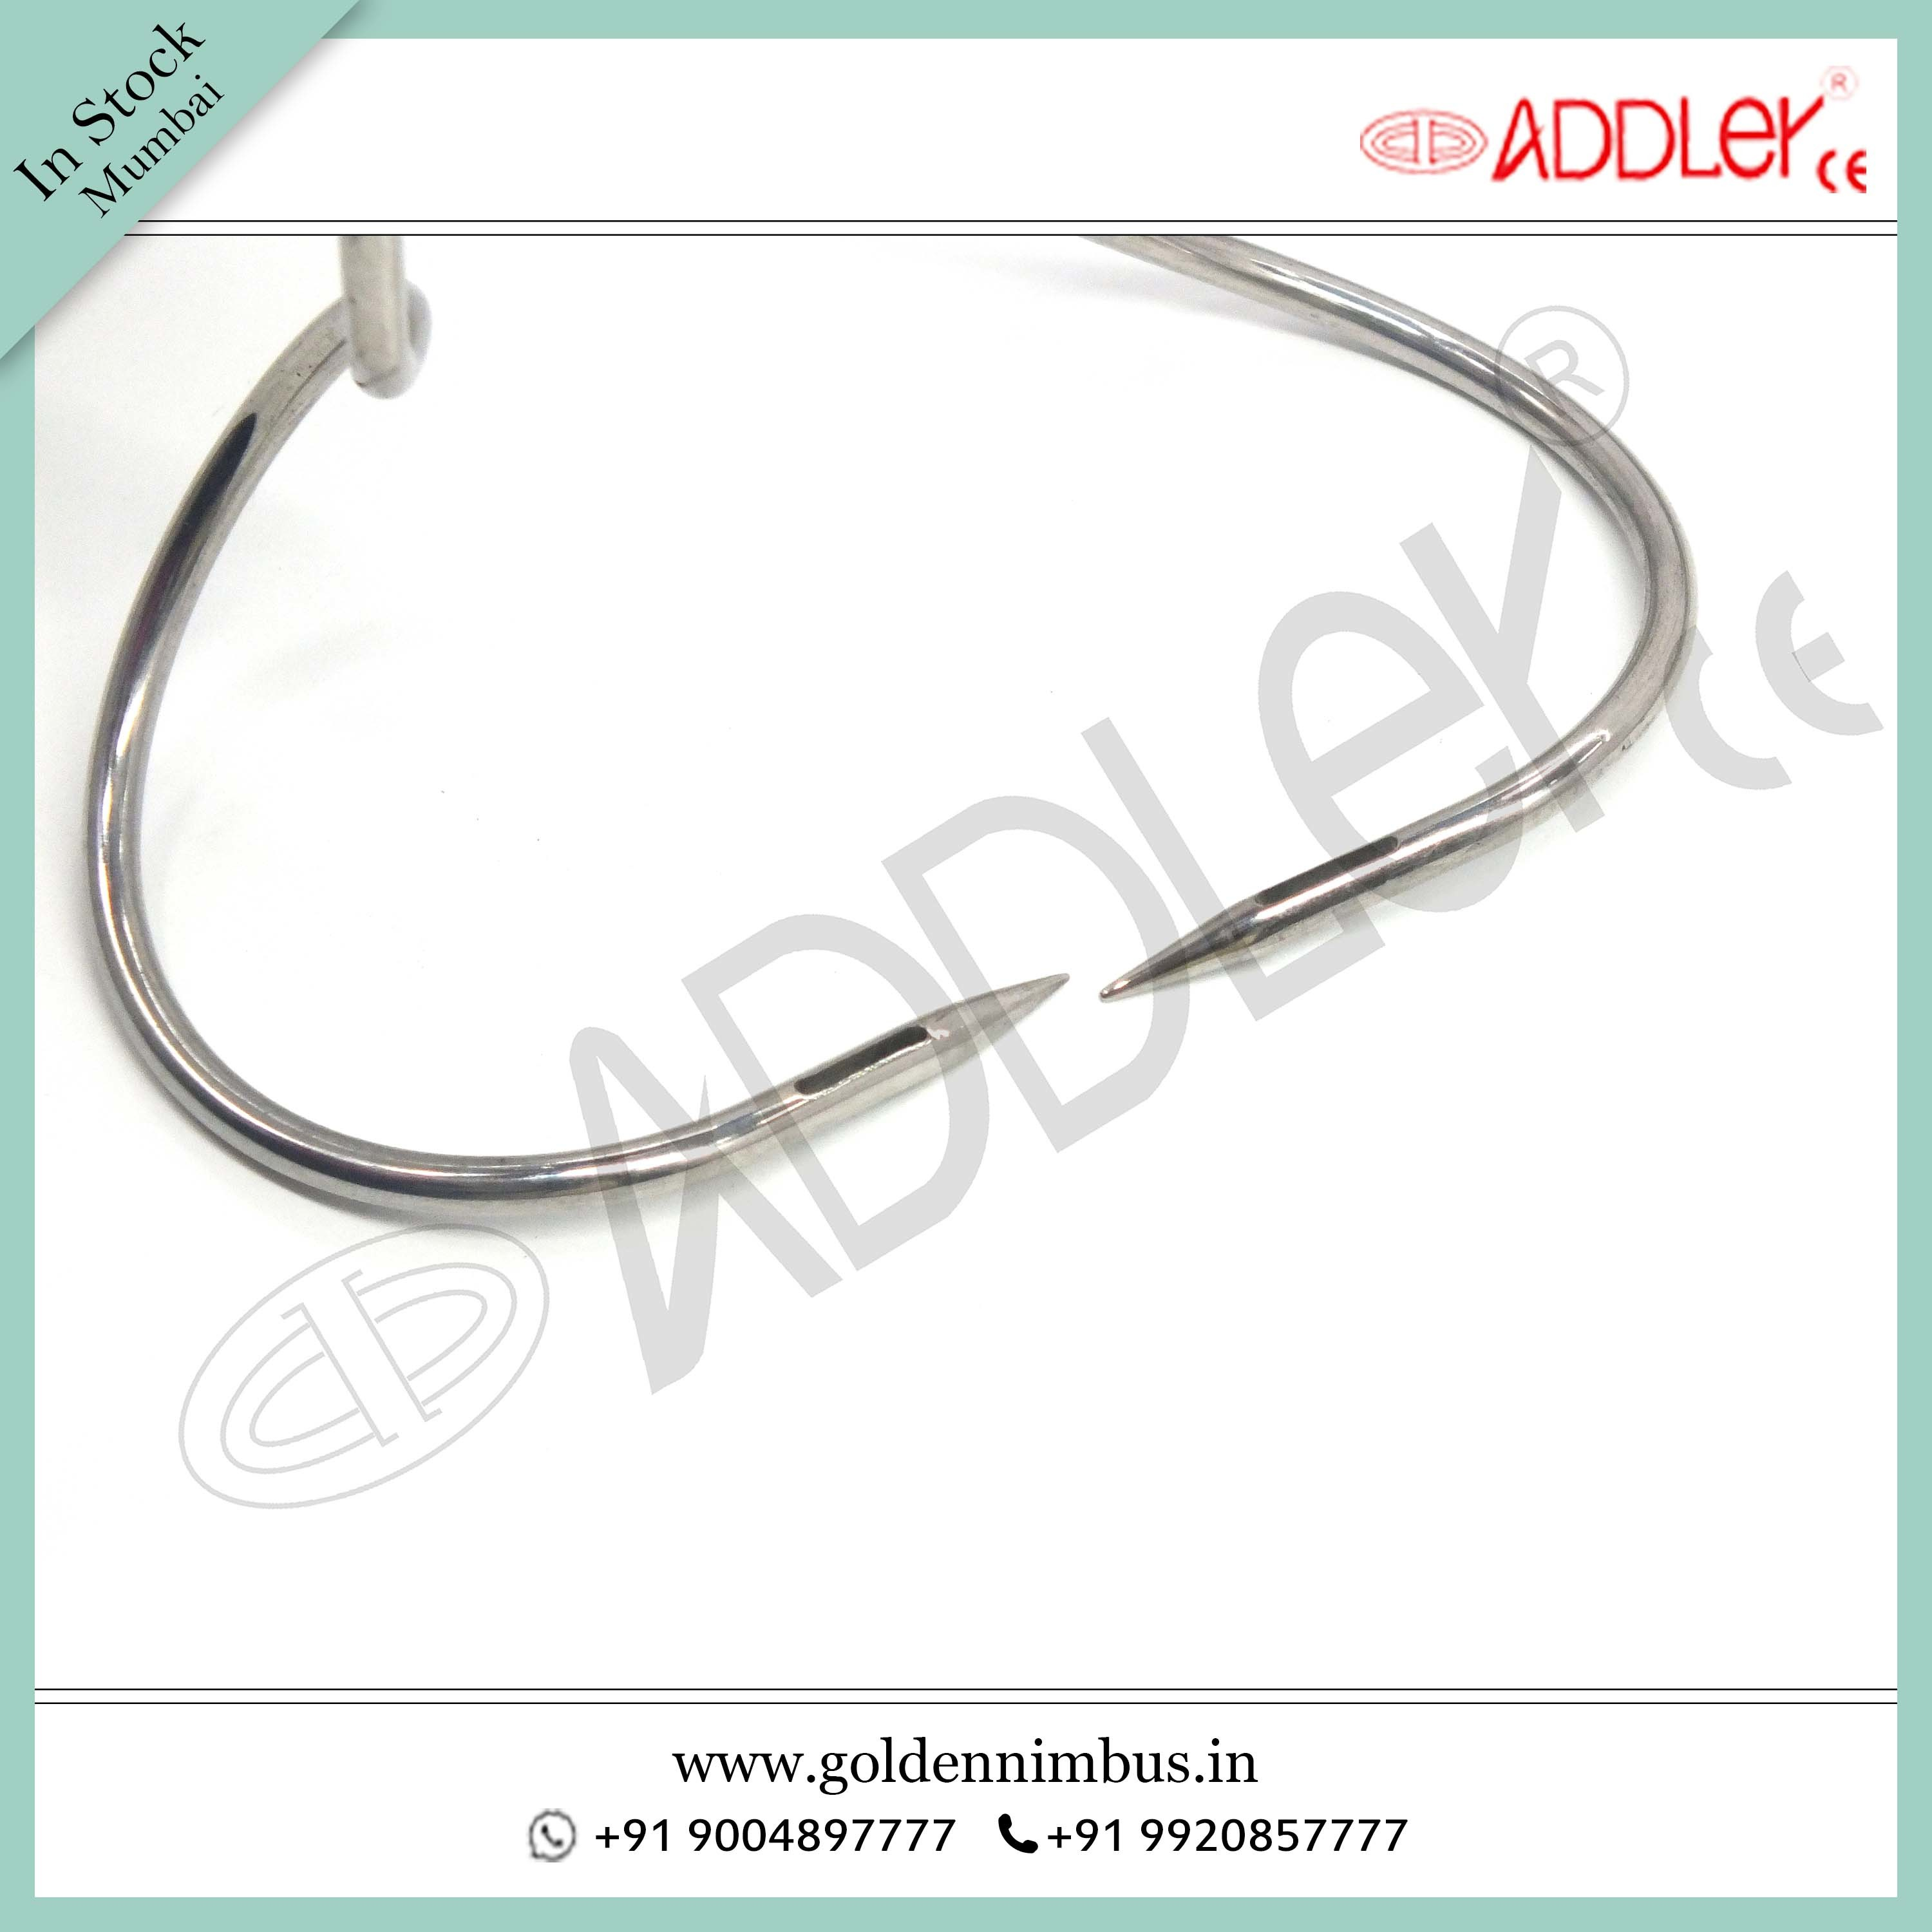 Brand New ADDLER Laparoscopic Mochi Needle Left and Right HandBrand New Addler Laparoscopic Mochi Needle Left And Right Hand